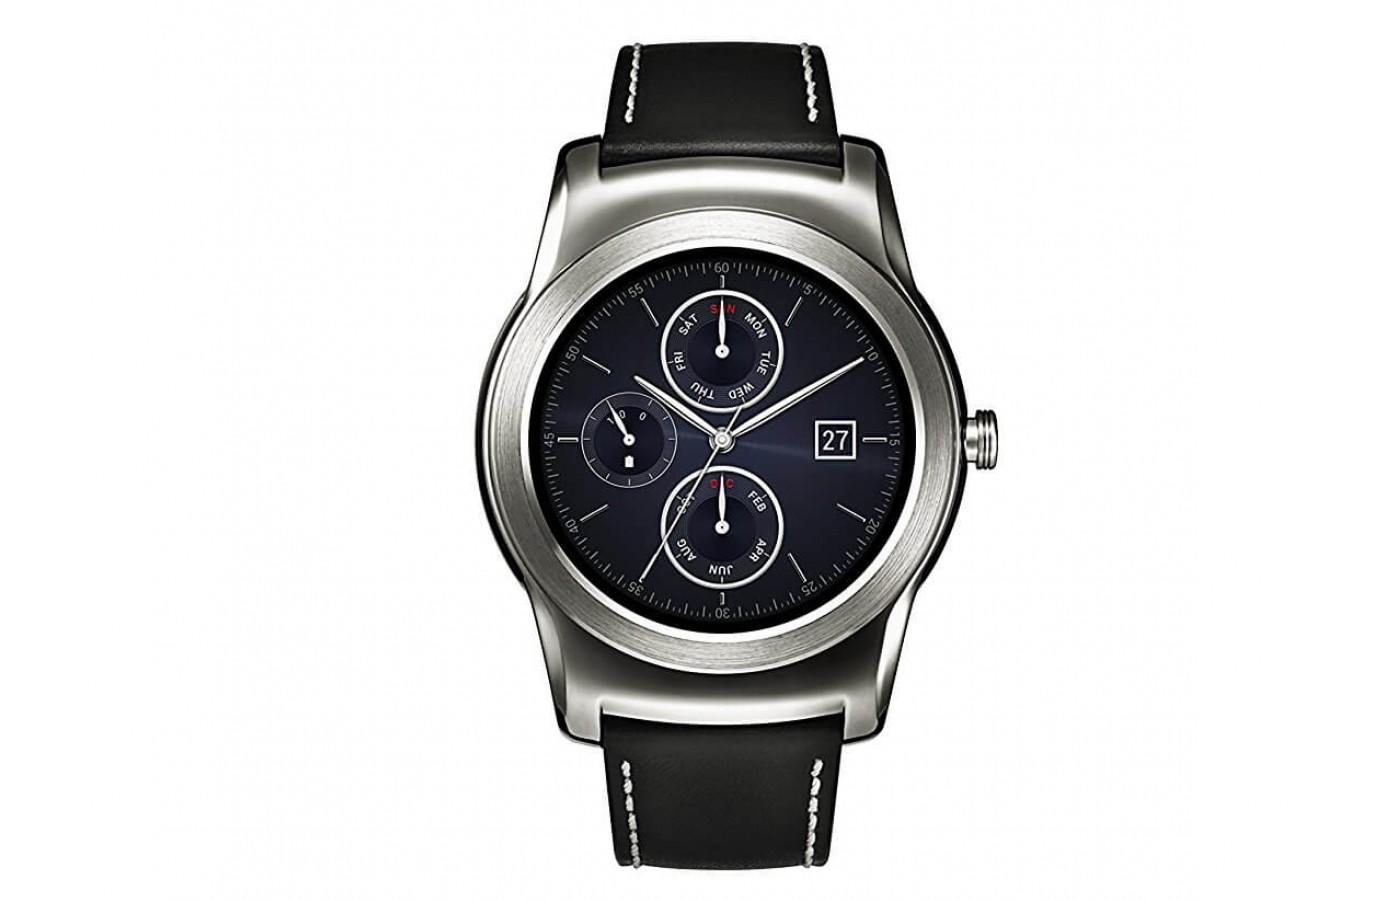 LG Watch Urbane Smart Watch